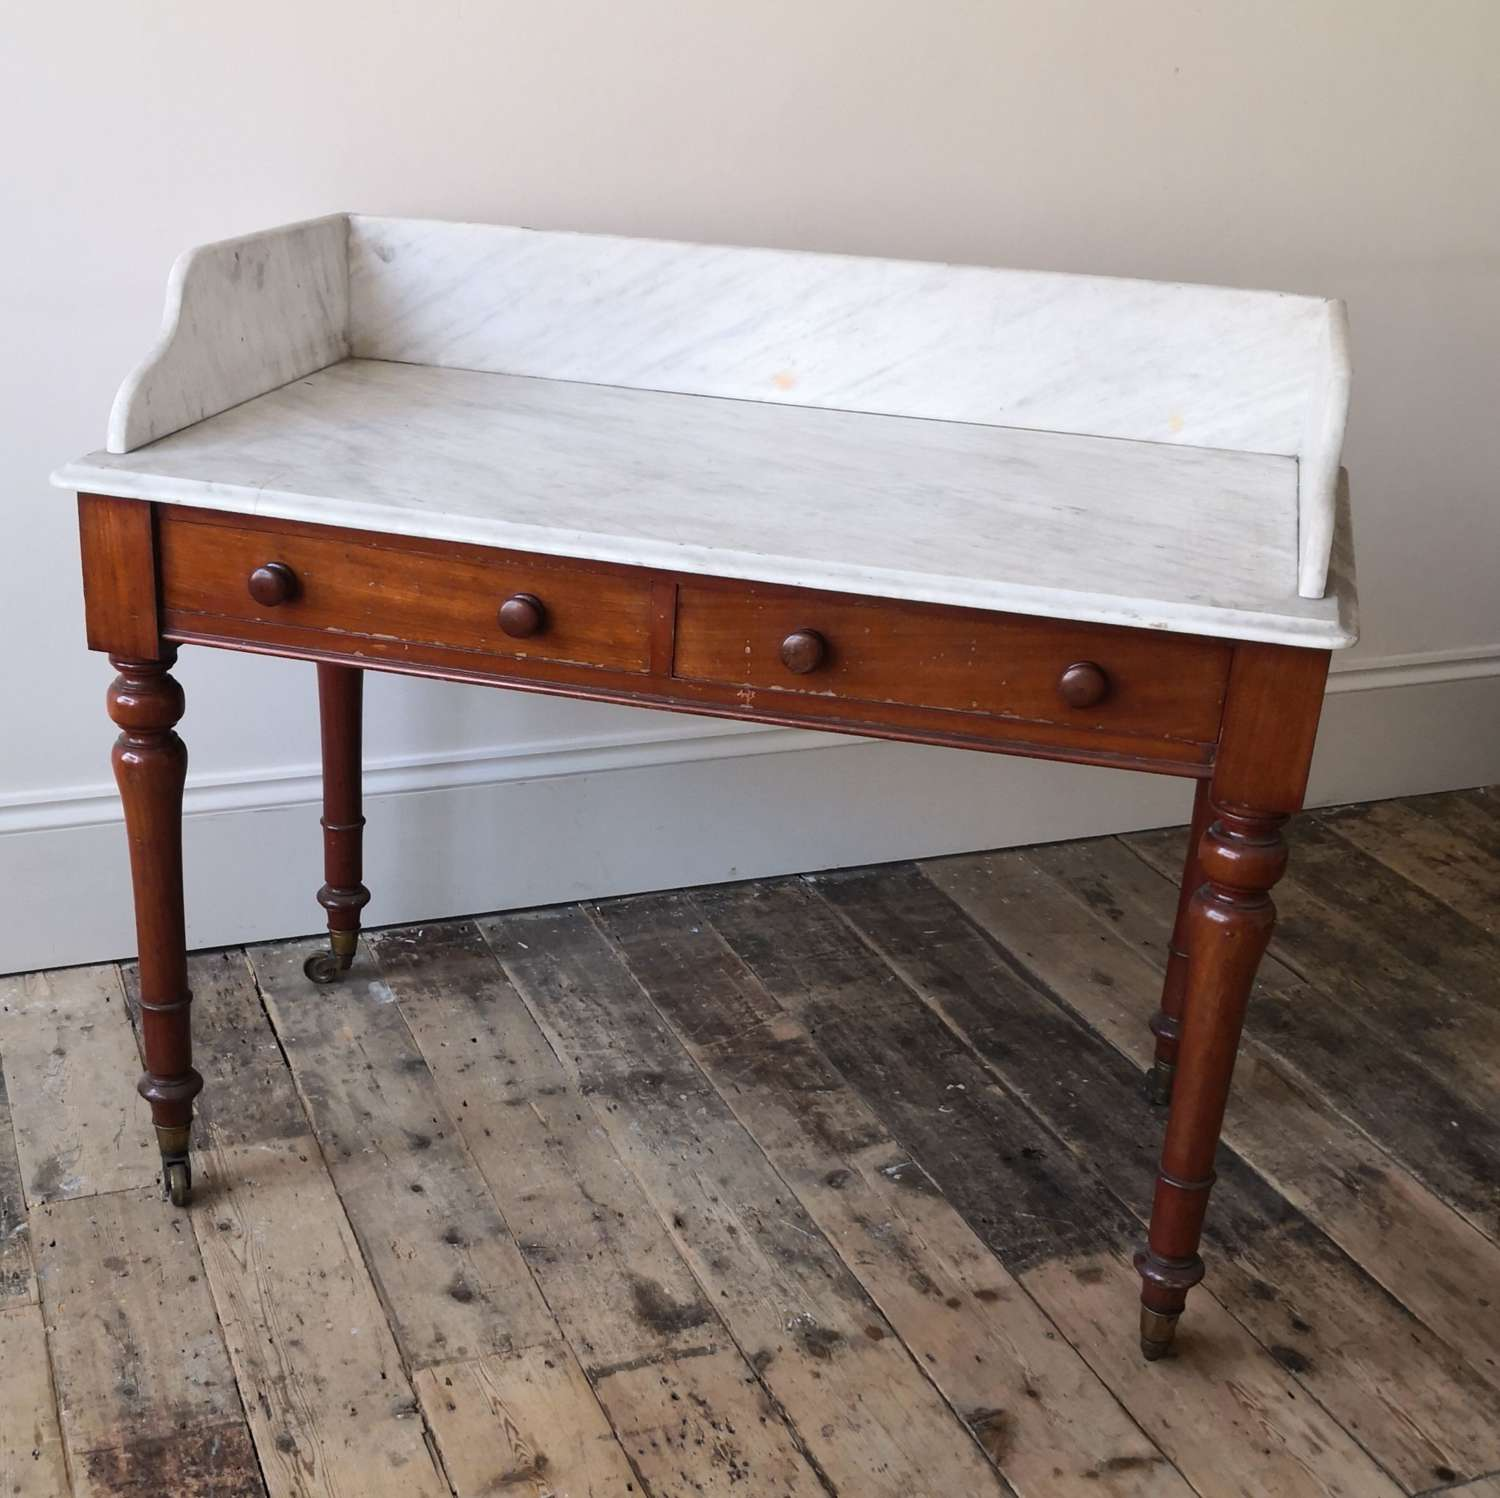 Howard & sons washstand